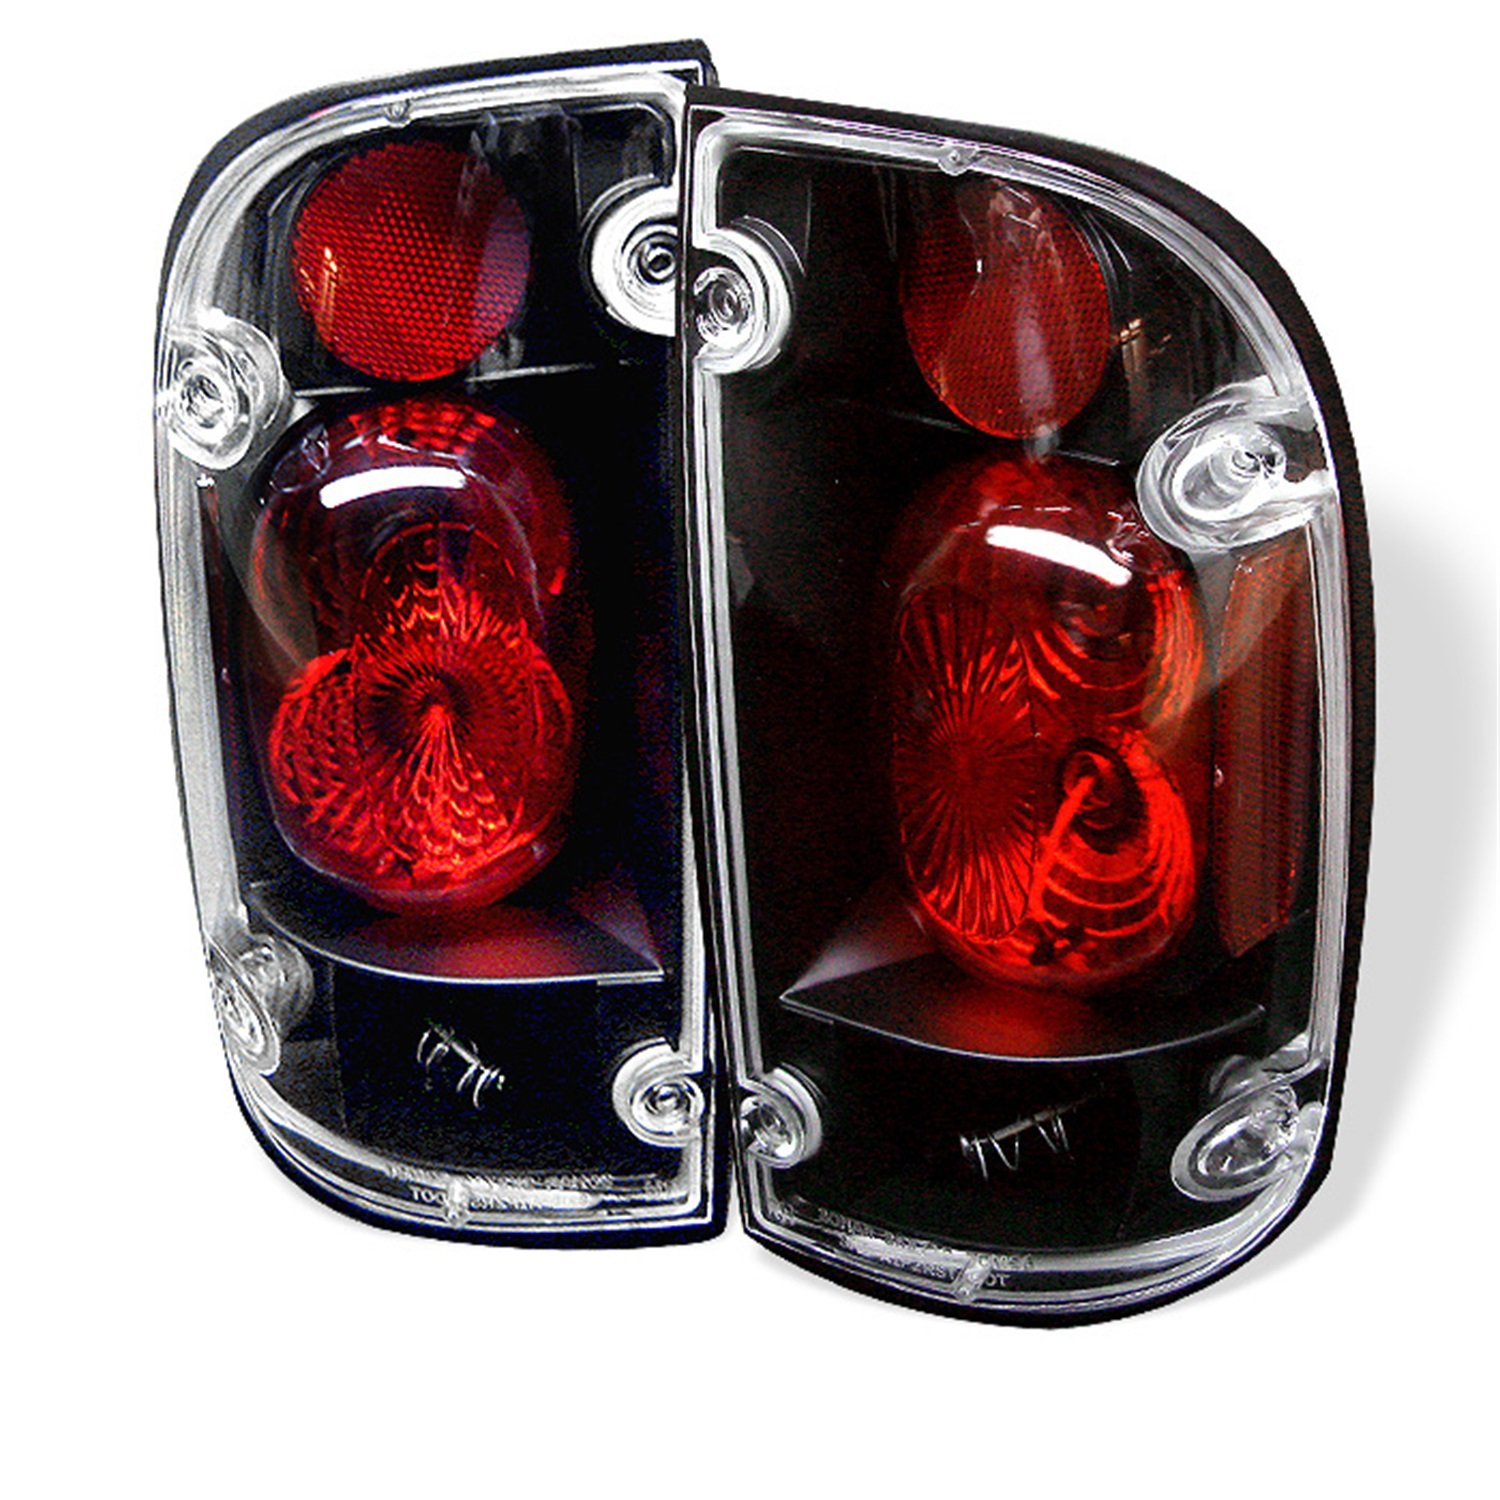 Amazon.com: Spyder Auto Toyota Tacoma Black Altezza Tail Light: Automotive